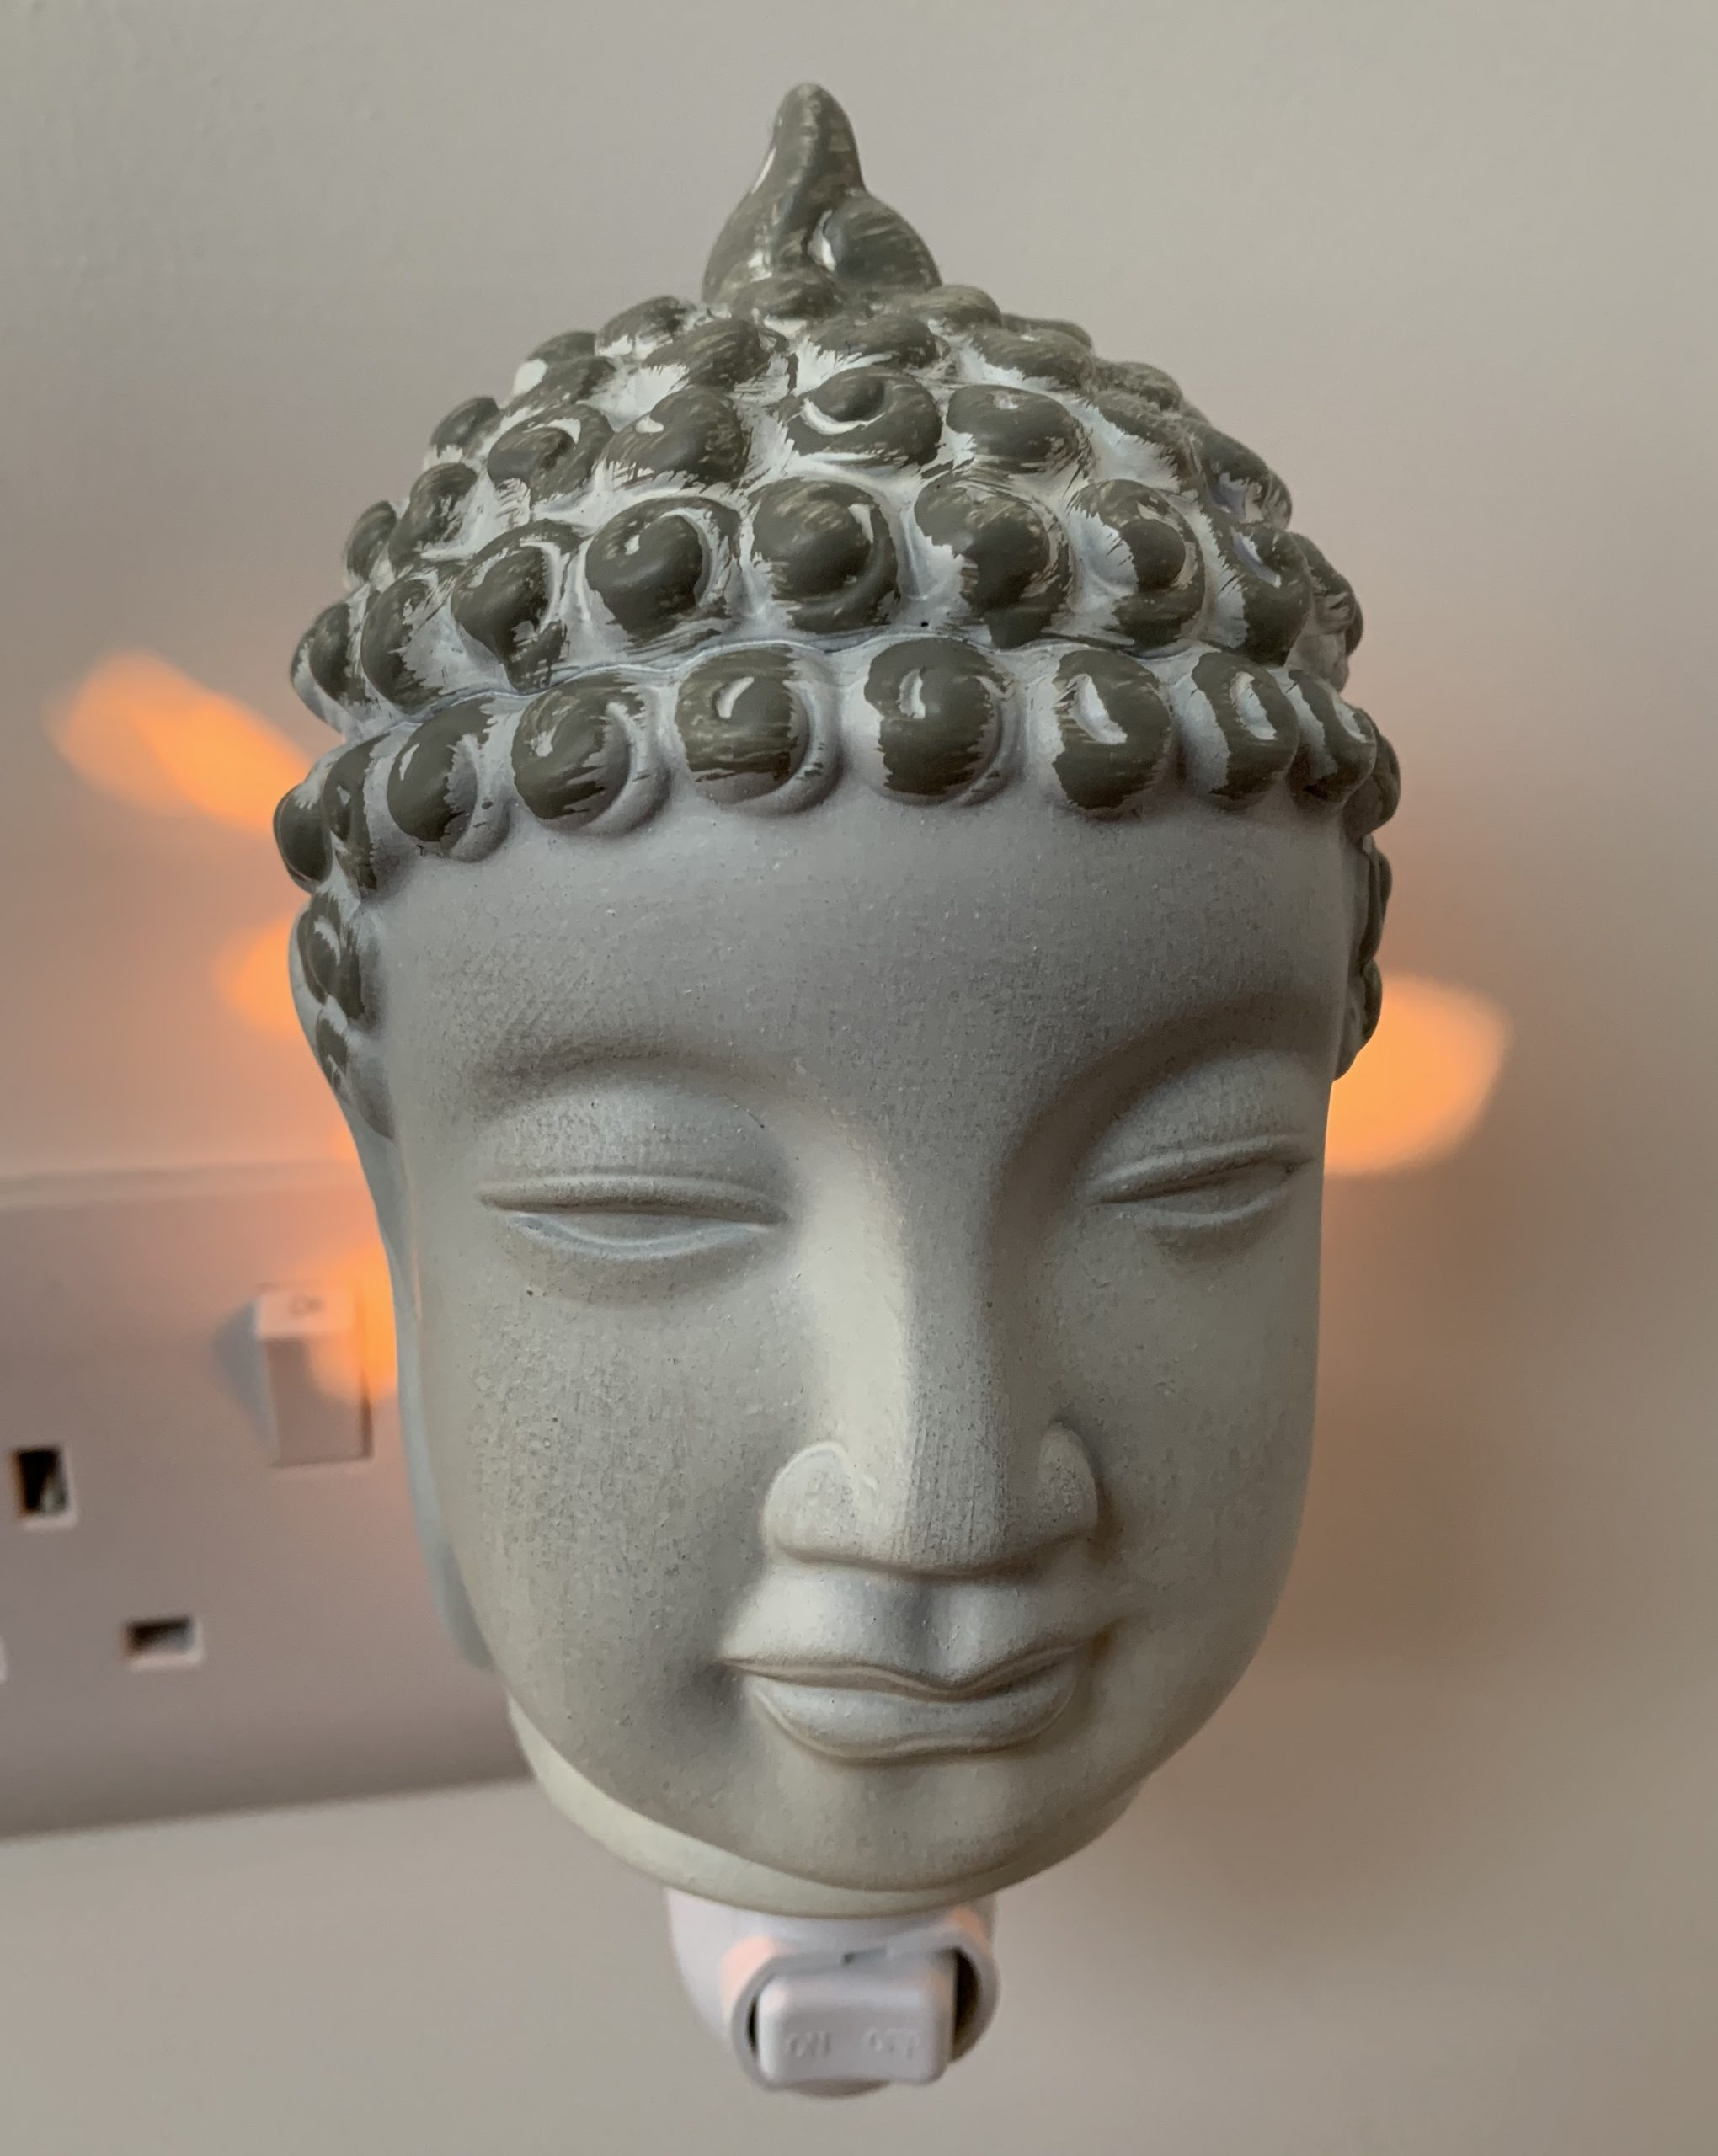 Scentsy Buddha Plug In Warmer